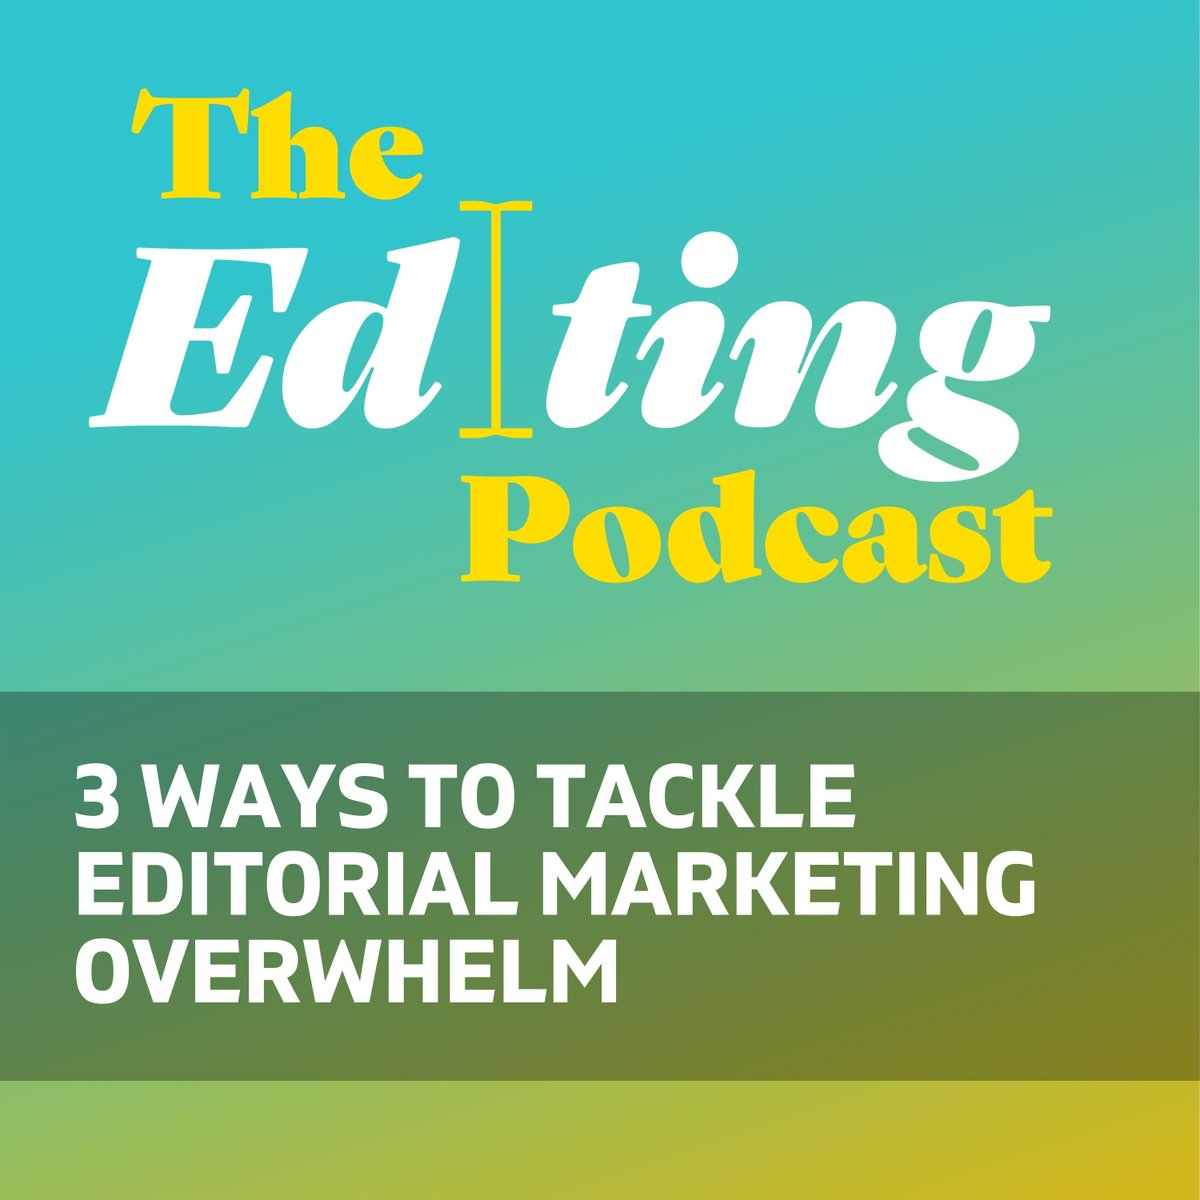 New on The Editing Podcast:🎙️ Me and Cowle are chewing the fat again. This time its about marketing for editors and proofreaders. We have 3 tips on how to overcome the fear! buff.ly/3l6kN2D